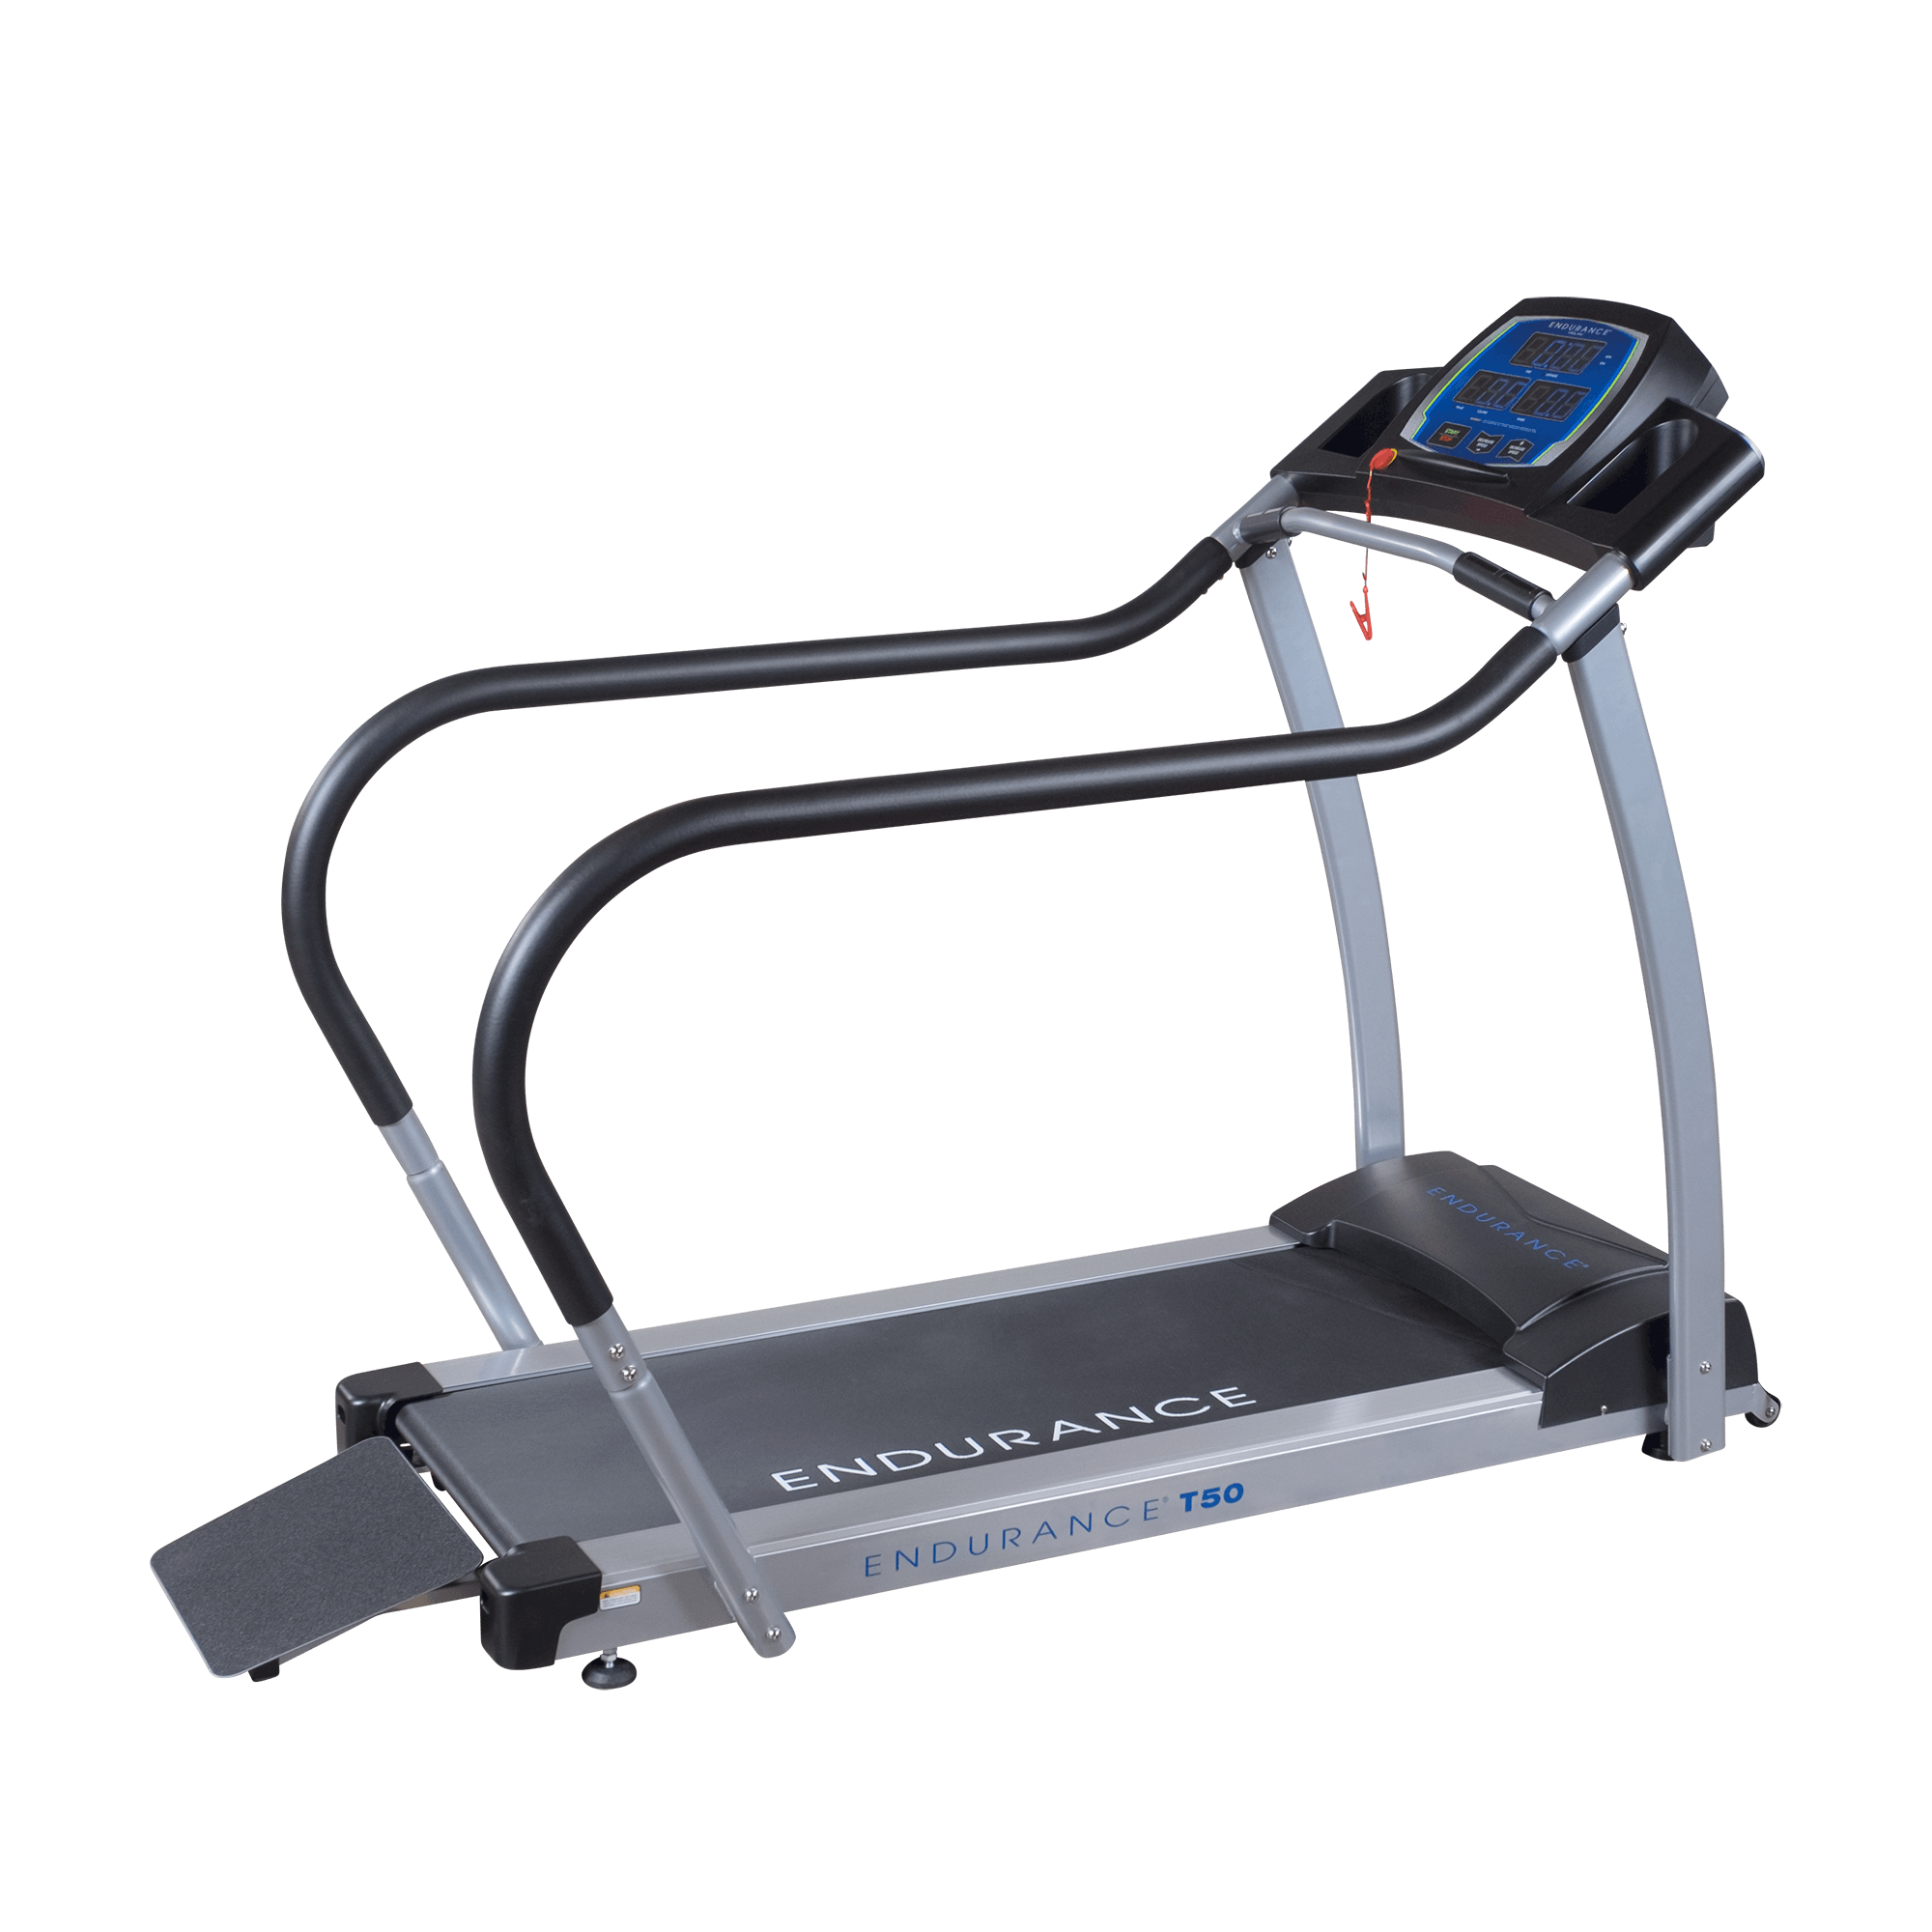 Bodysolid Endurance T50